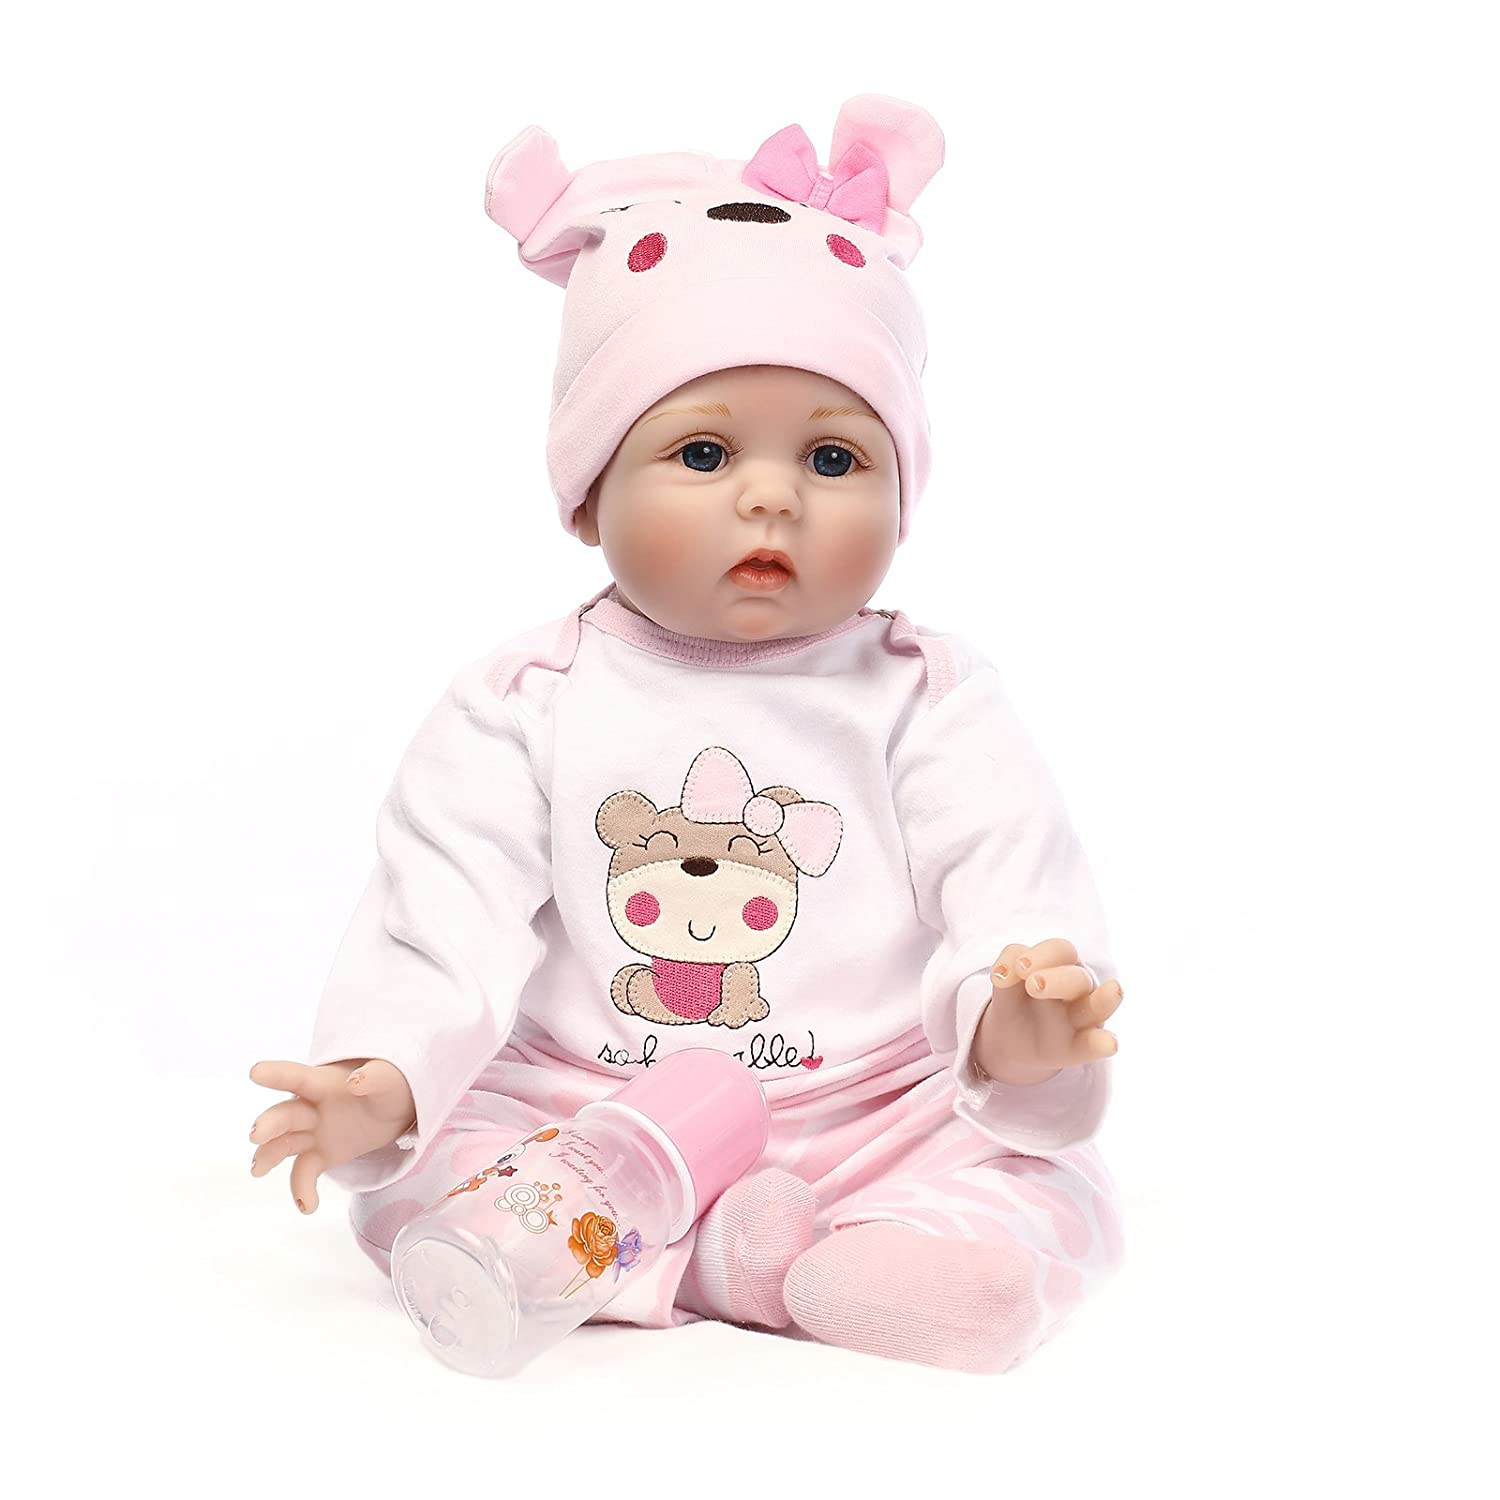 NPK Reborn Baby Doll Girl 22 Look Real Silicone Vinyl Handmade Weighted Pink Outfit Eyes Open Cute Doll Gift Set for Ages 3+